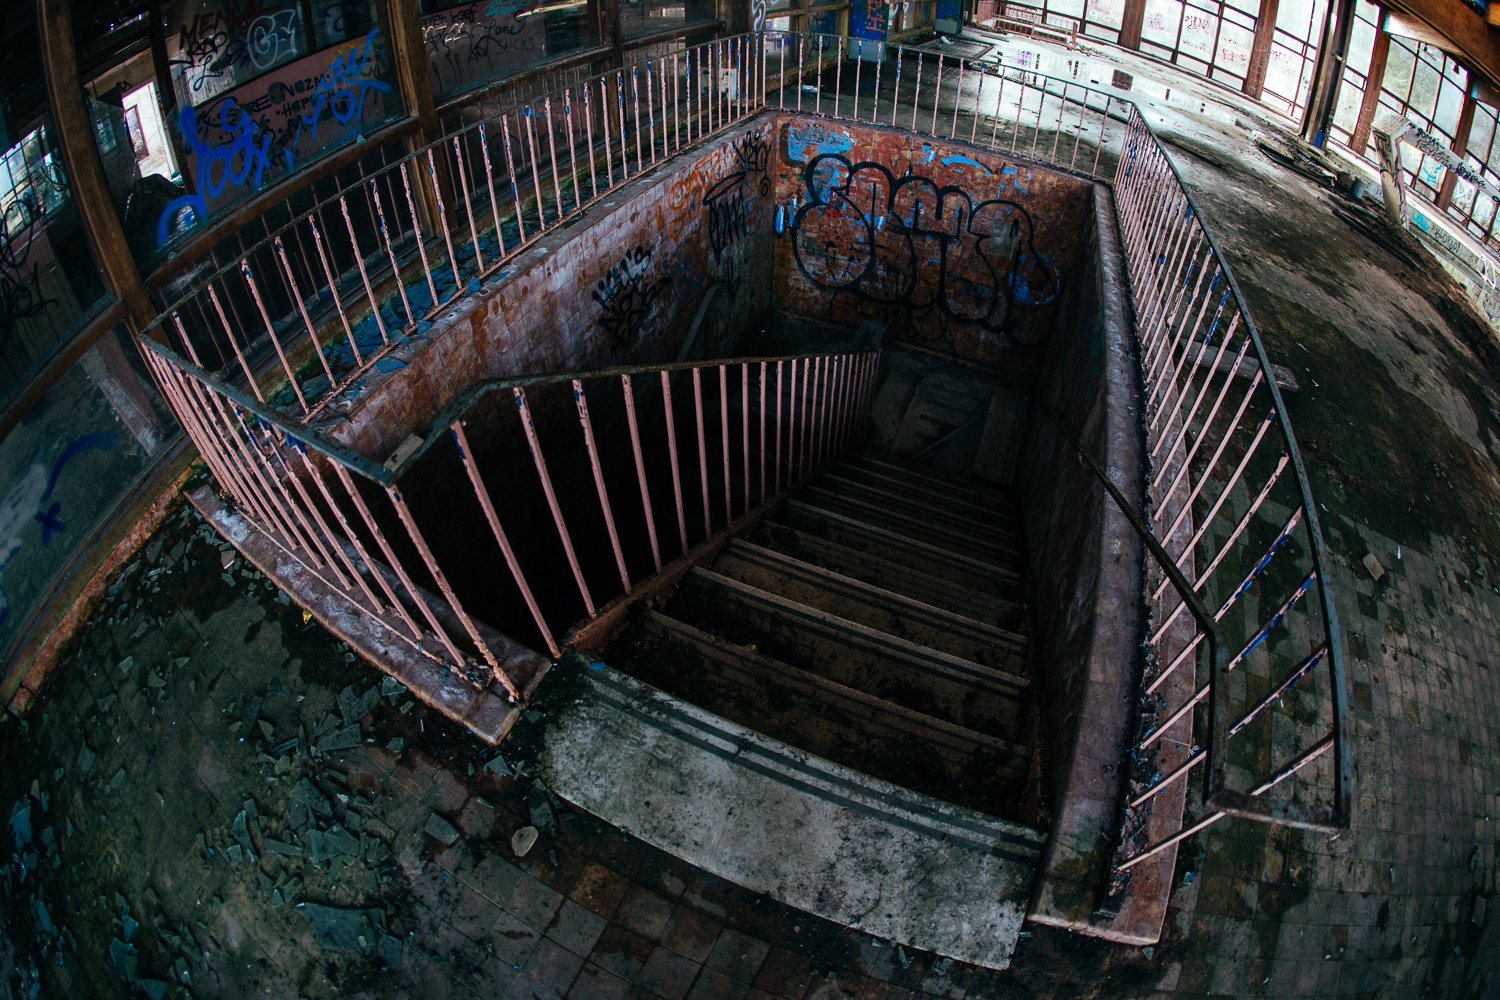 Do you dare go down there??